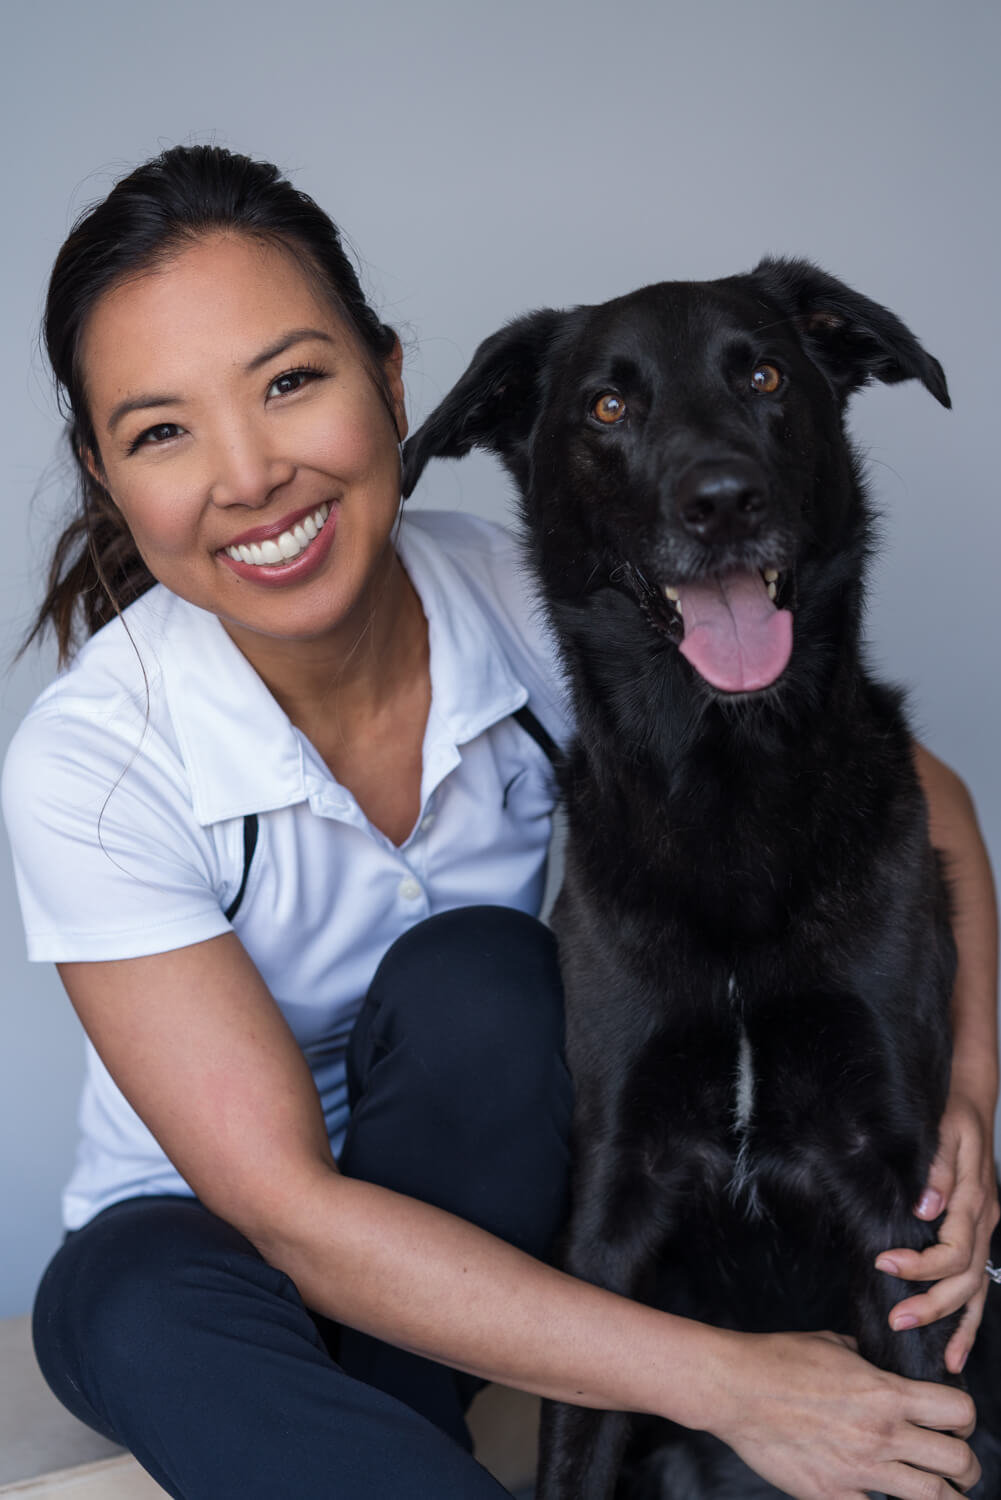 Personal Branding Portrait with Dog